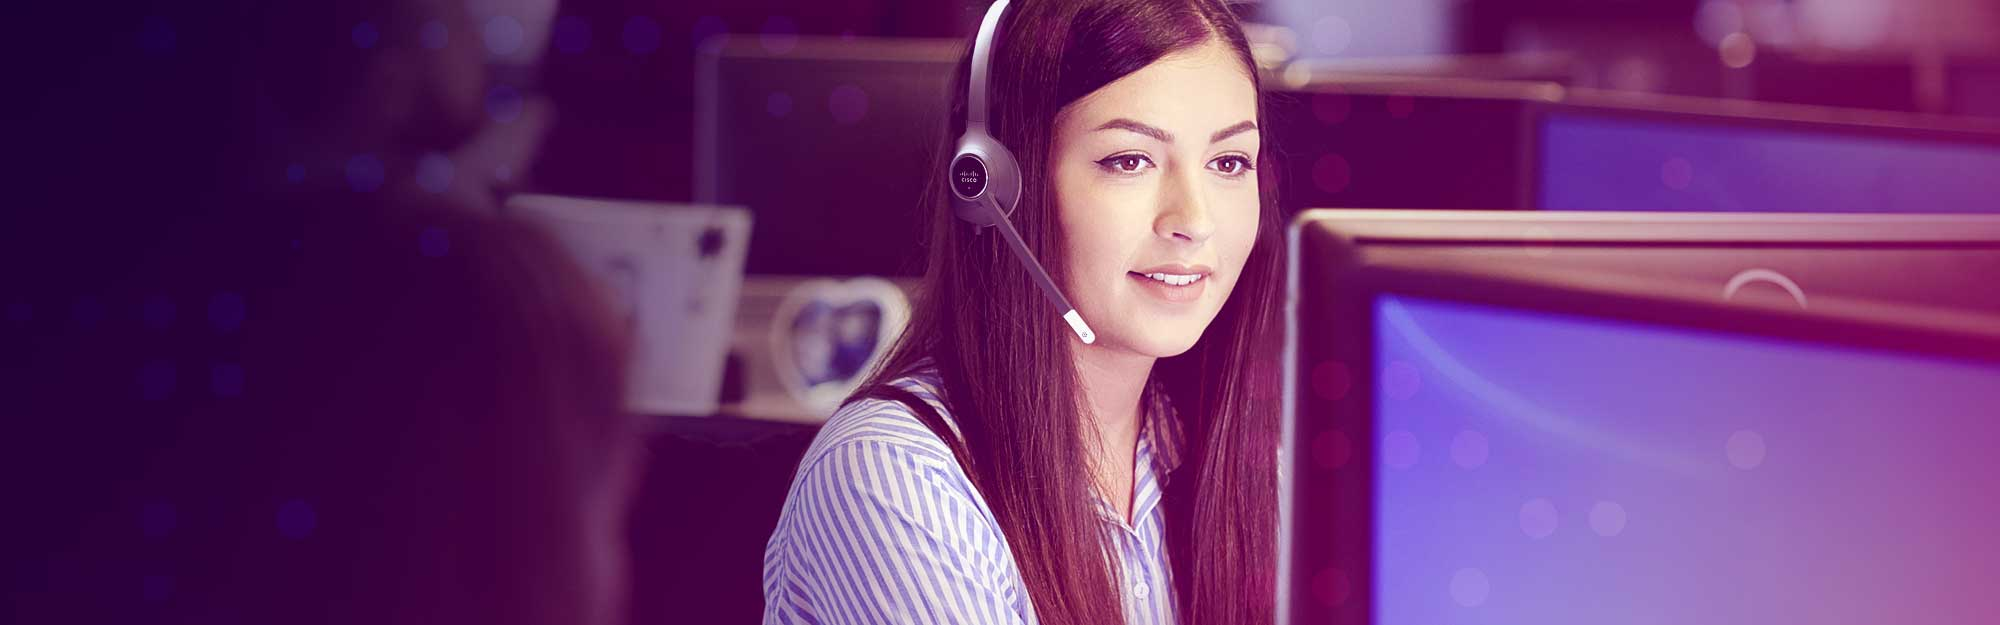 NCS IT helpdesk technician supporting client remotely